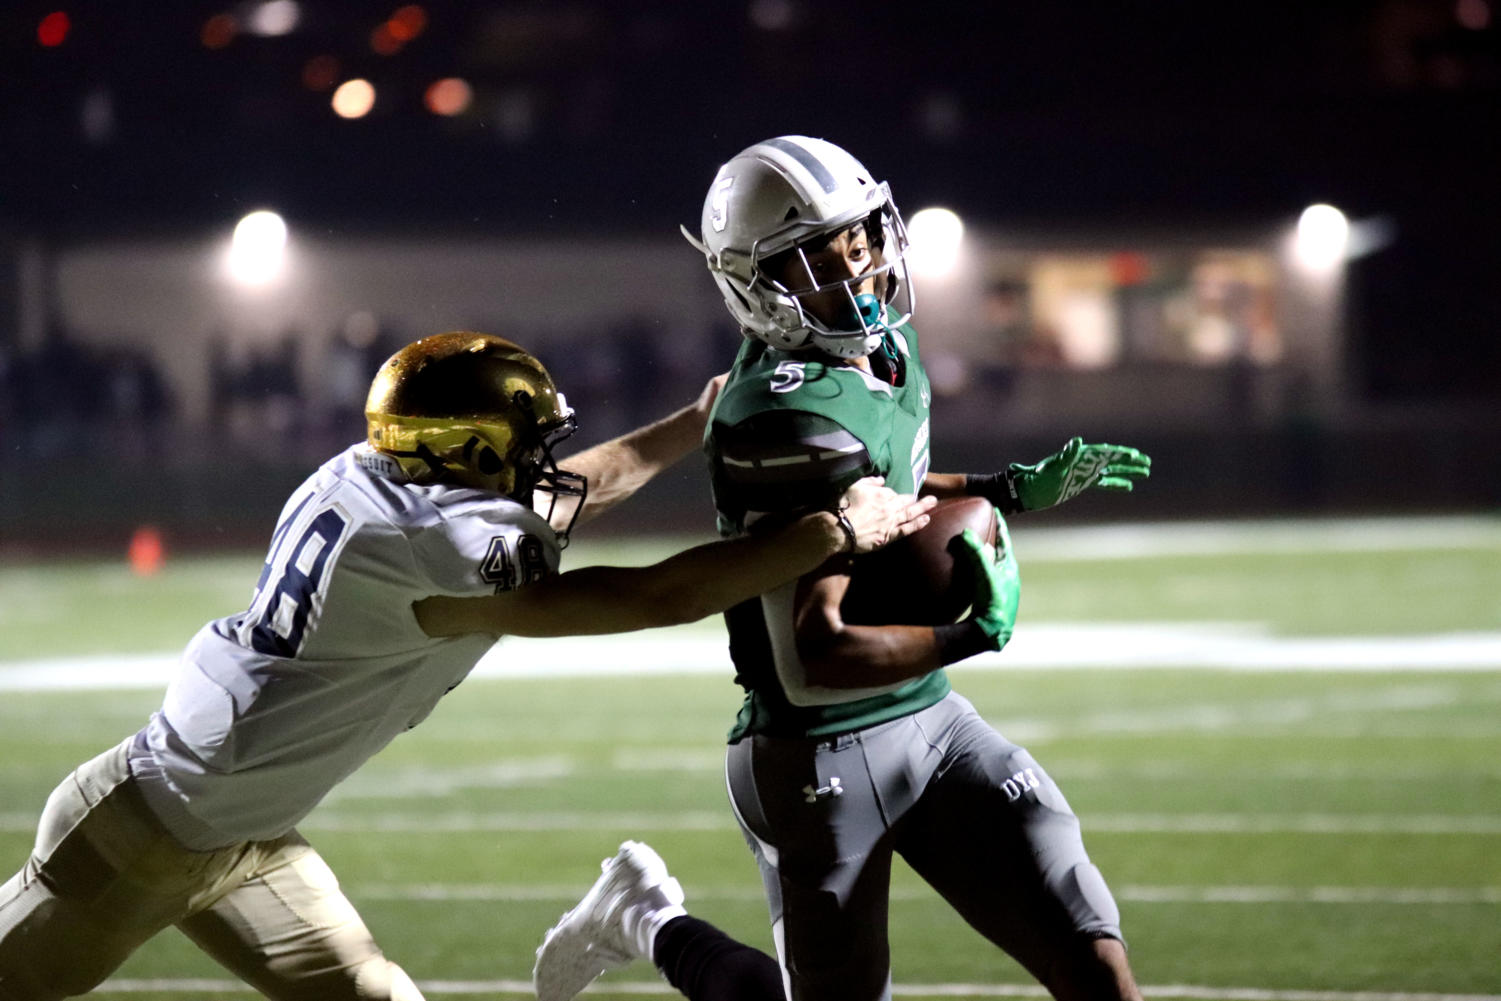 Prosper senior Devin Haskins, No. 5, avoids a Jesuit Ranger defender. Haskins had 23 receiving yards and a touchdown Friday. The Eagles escaped Jesuit with a 30-28 win.